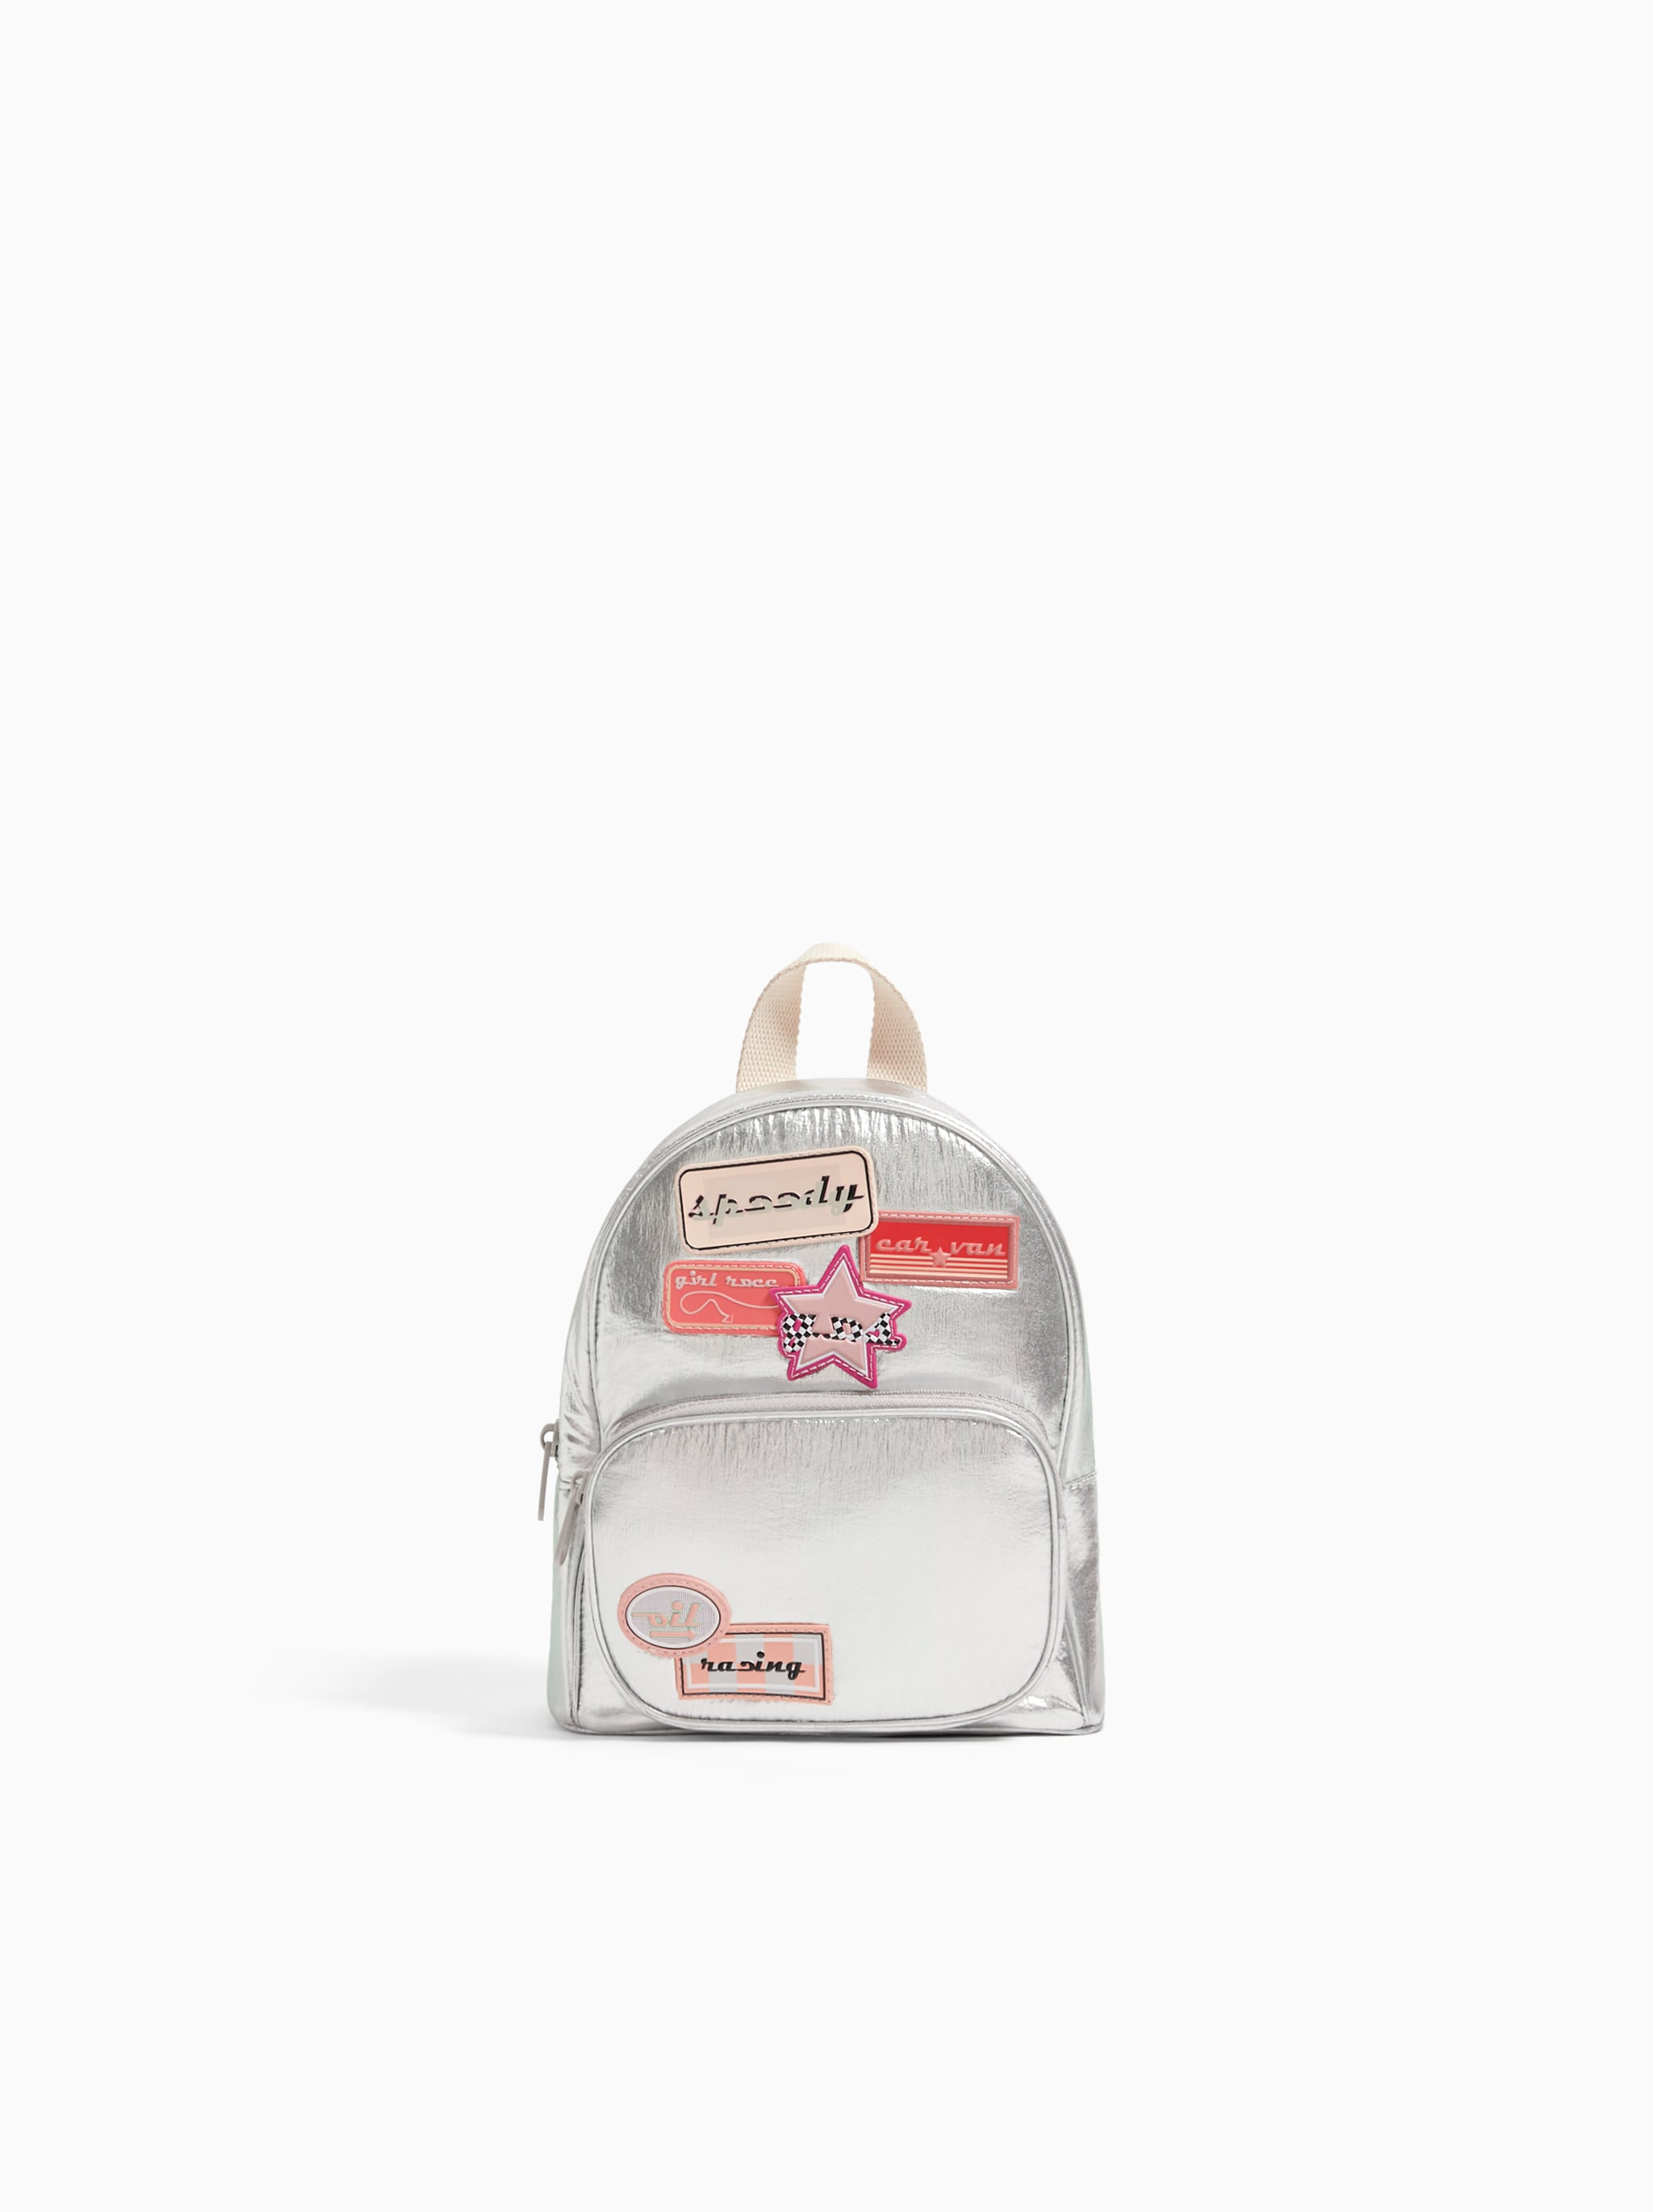 f9edd41a6cdd Zara METALLIC MINI BACKPACK WITH PATCHES